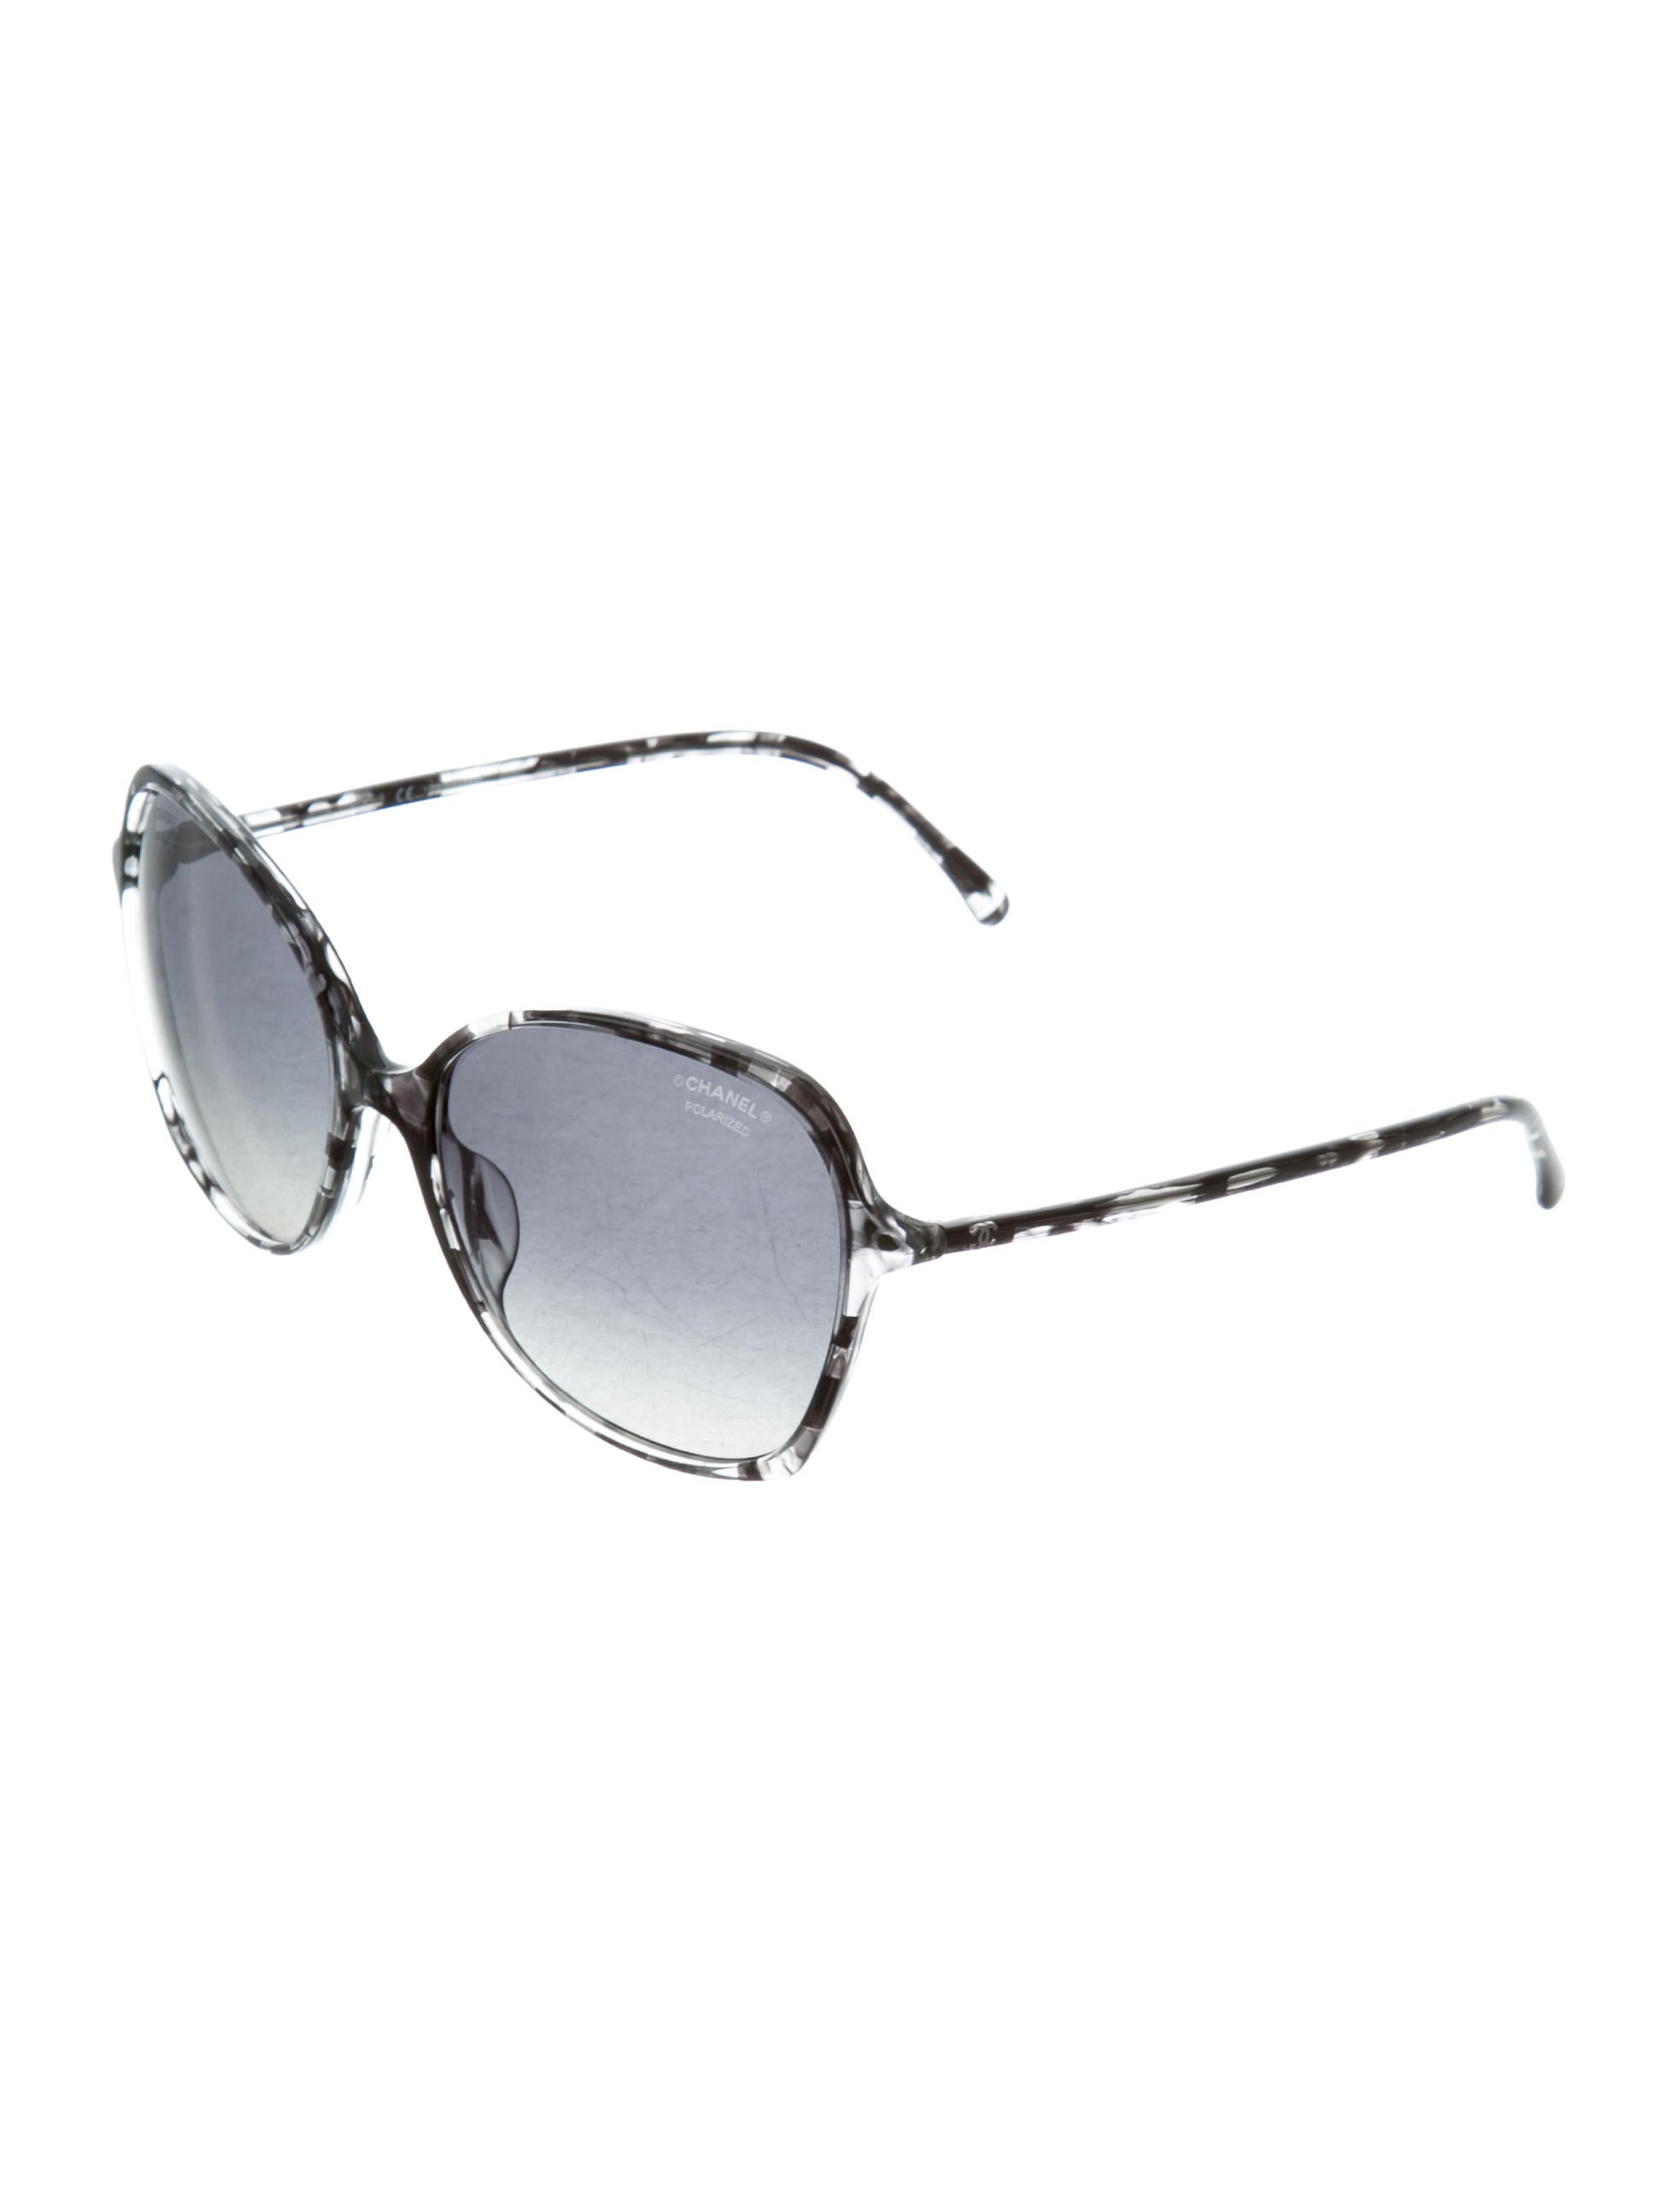 24b540be0a8 Oval Chanel Sunglasses Fake - Bitterroot Public Library